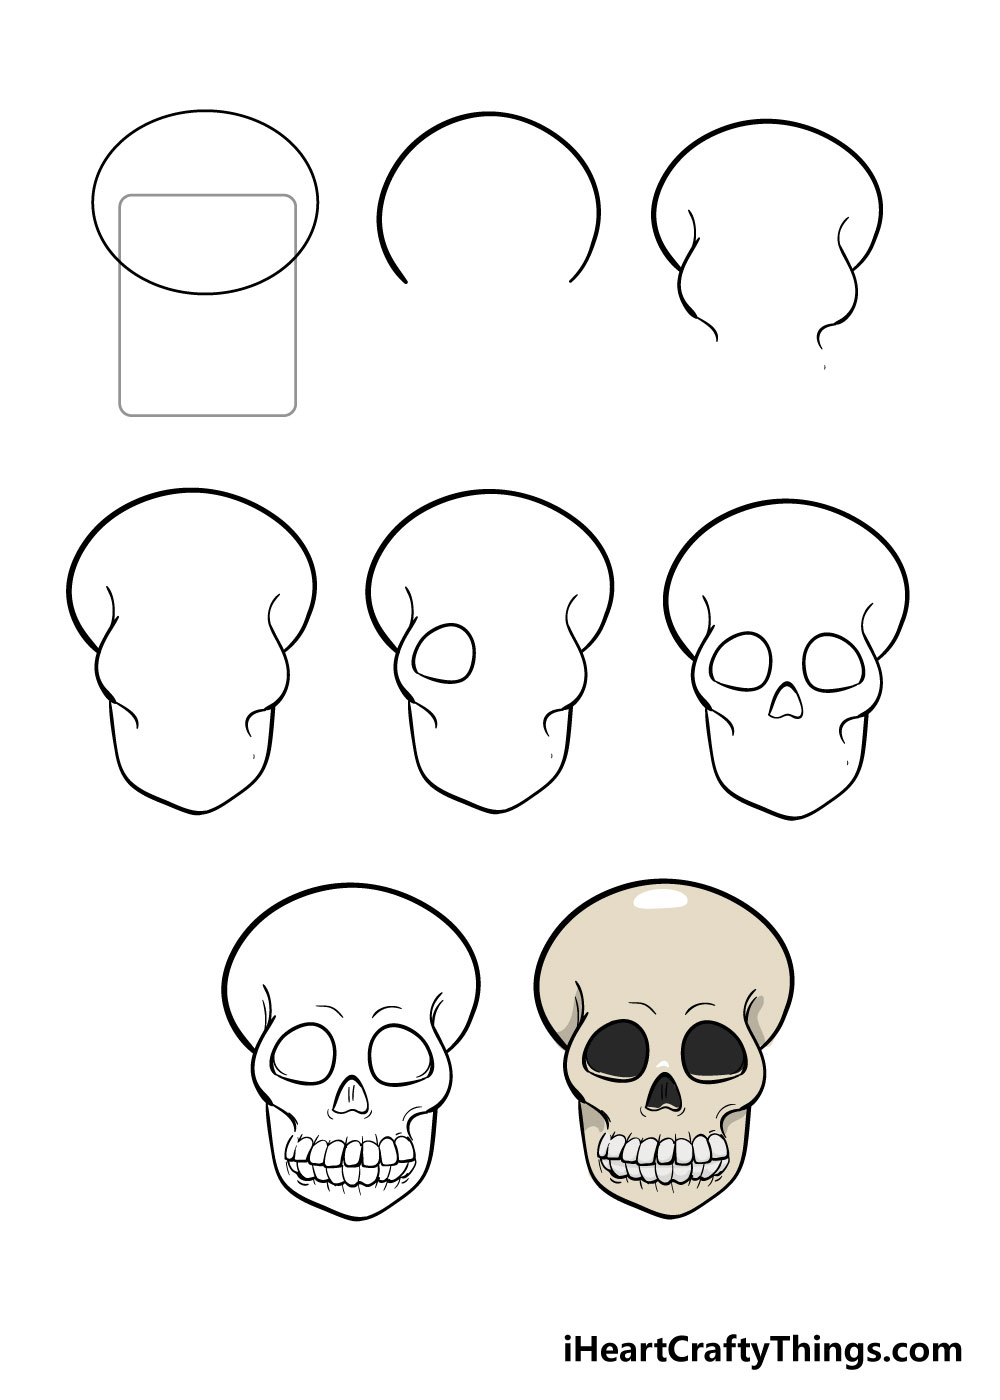 how to draw skull in 8 steps